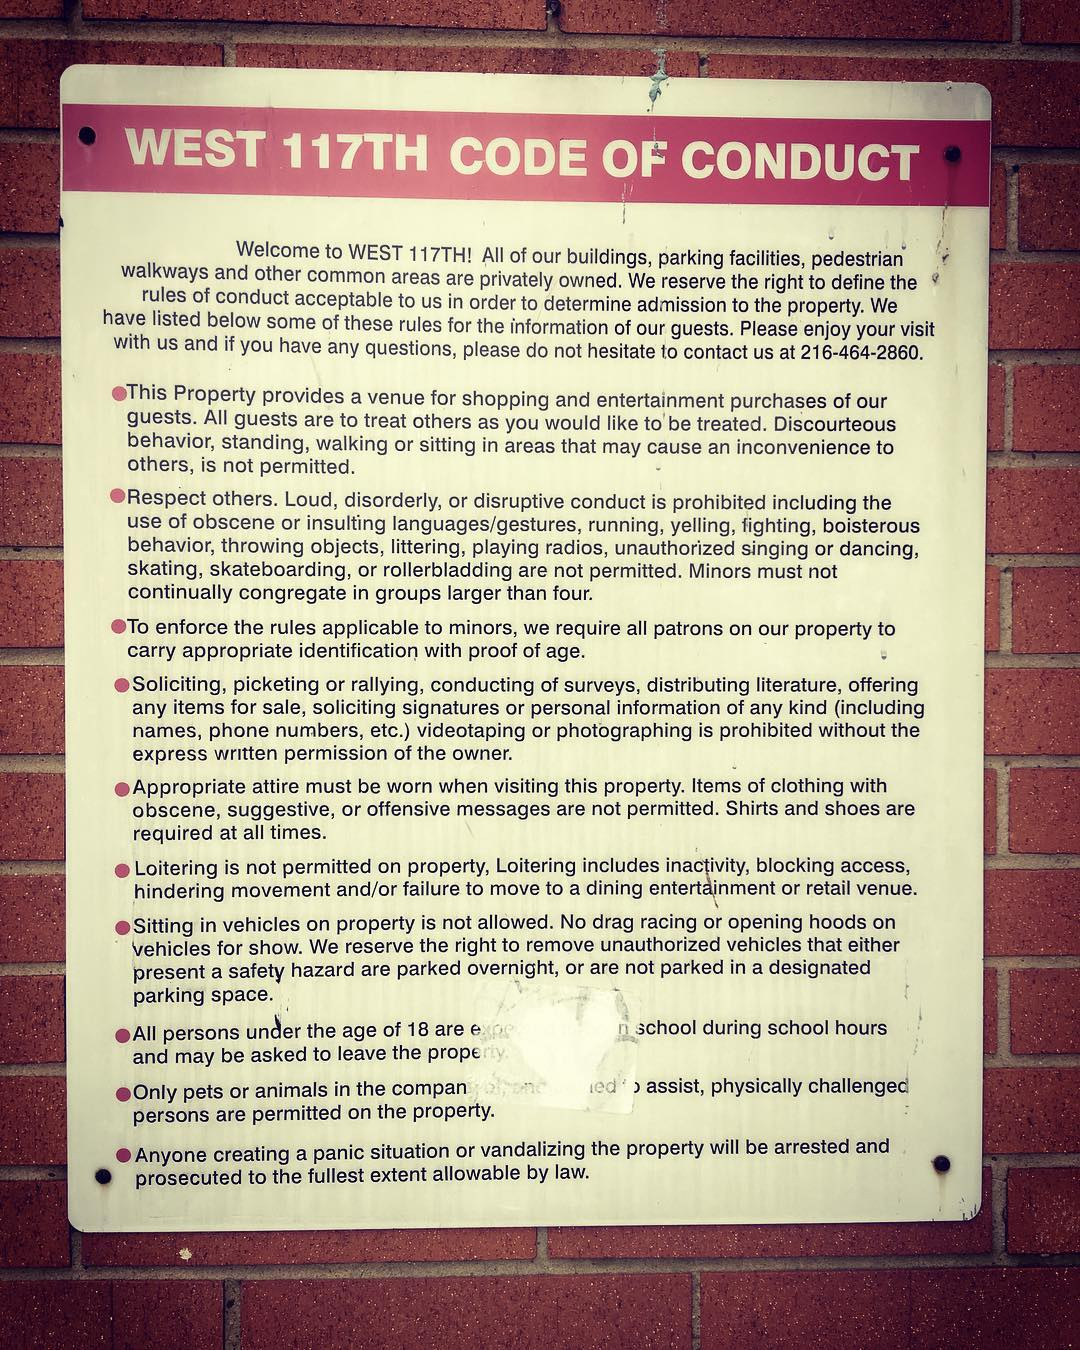 FYI West 117th Code of Conduct  posted next tohellip